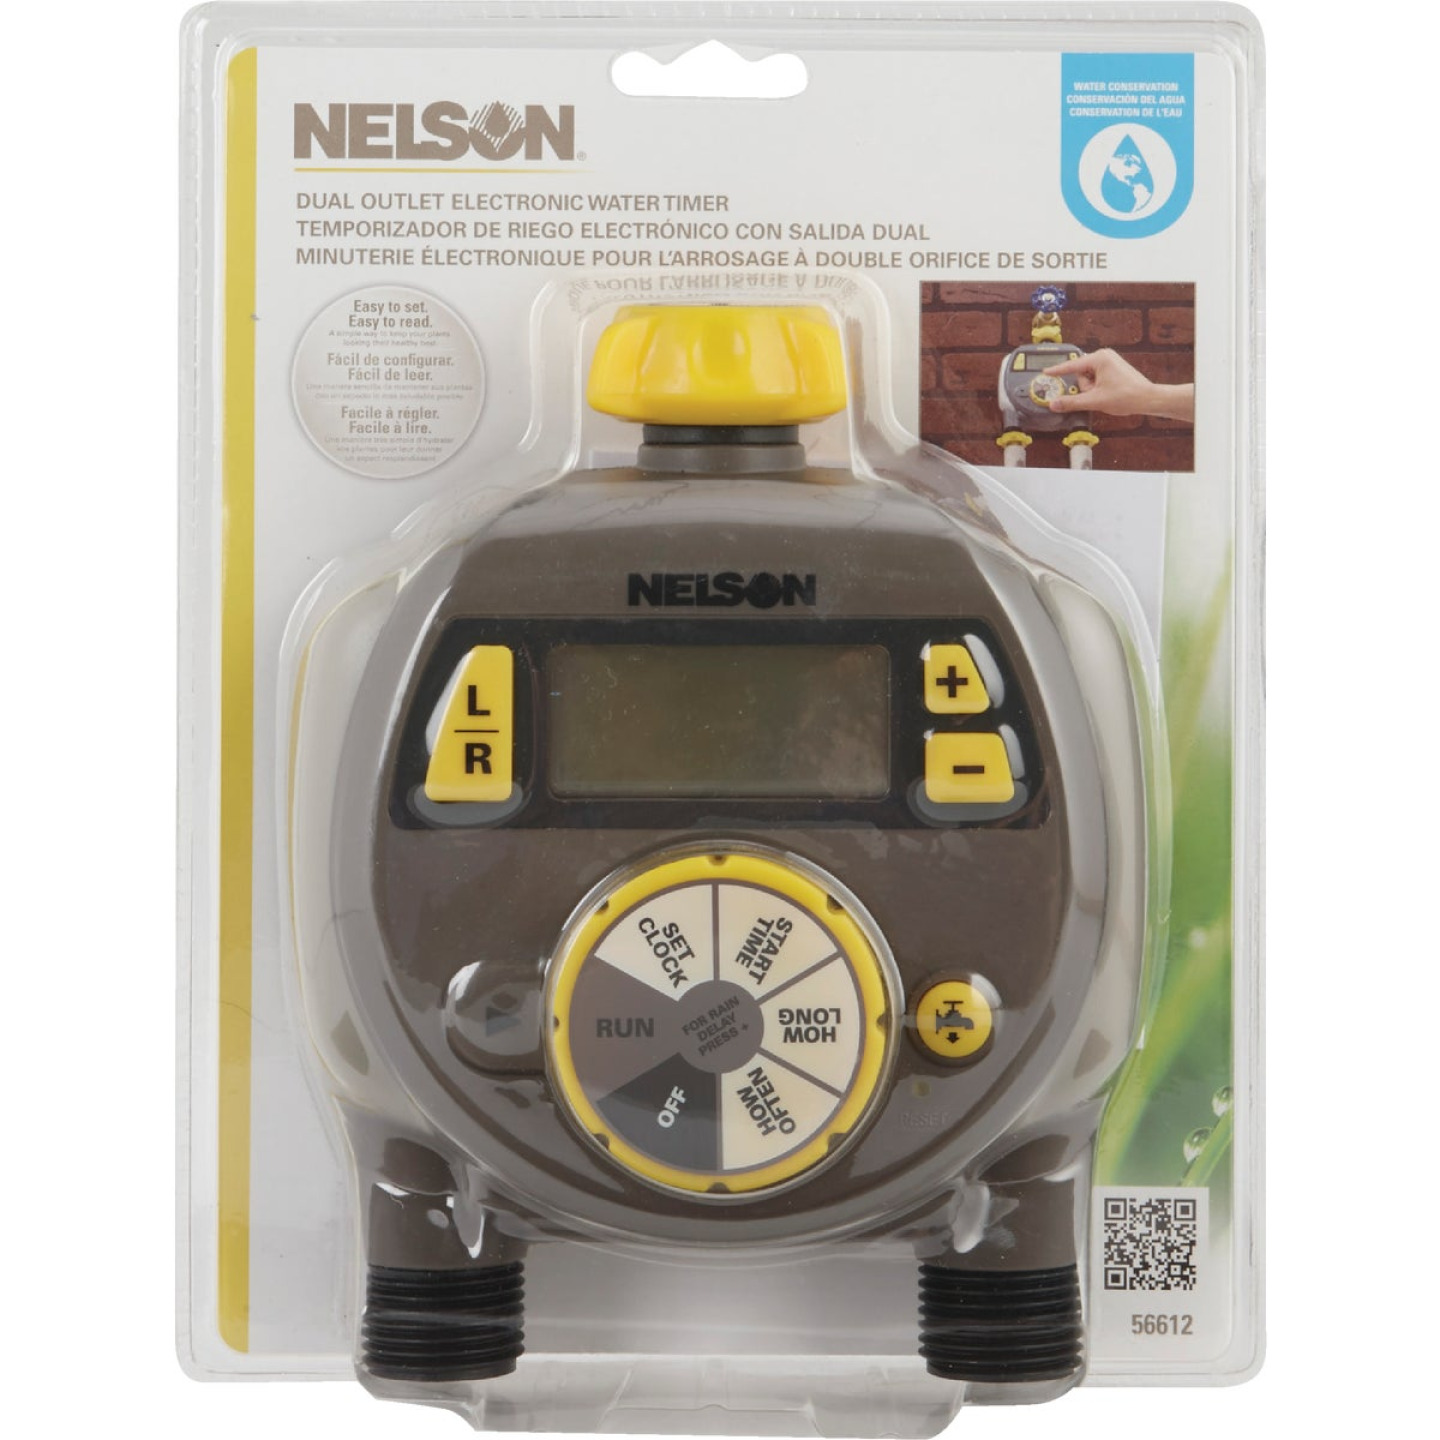 Nelson Electronic Dual Outlet Watering Timer Image 2